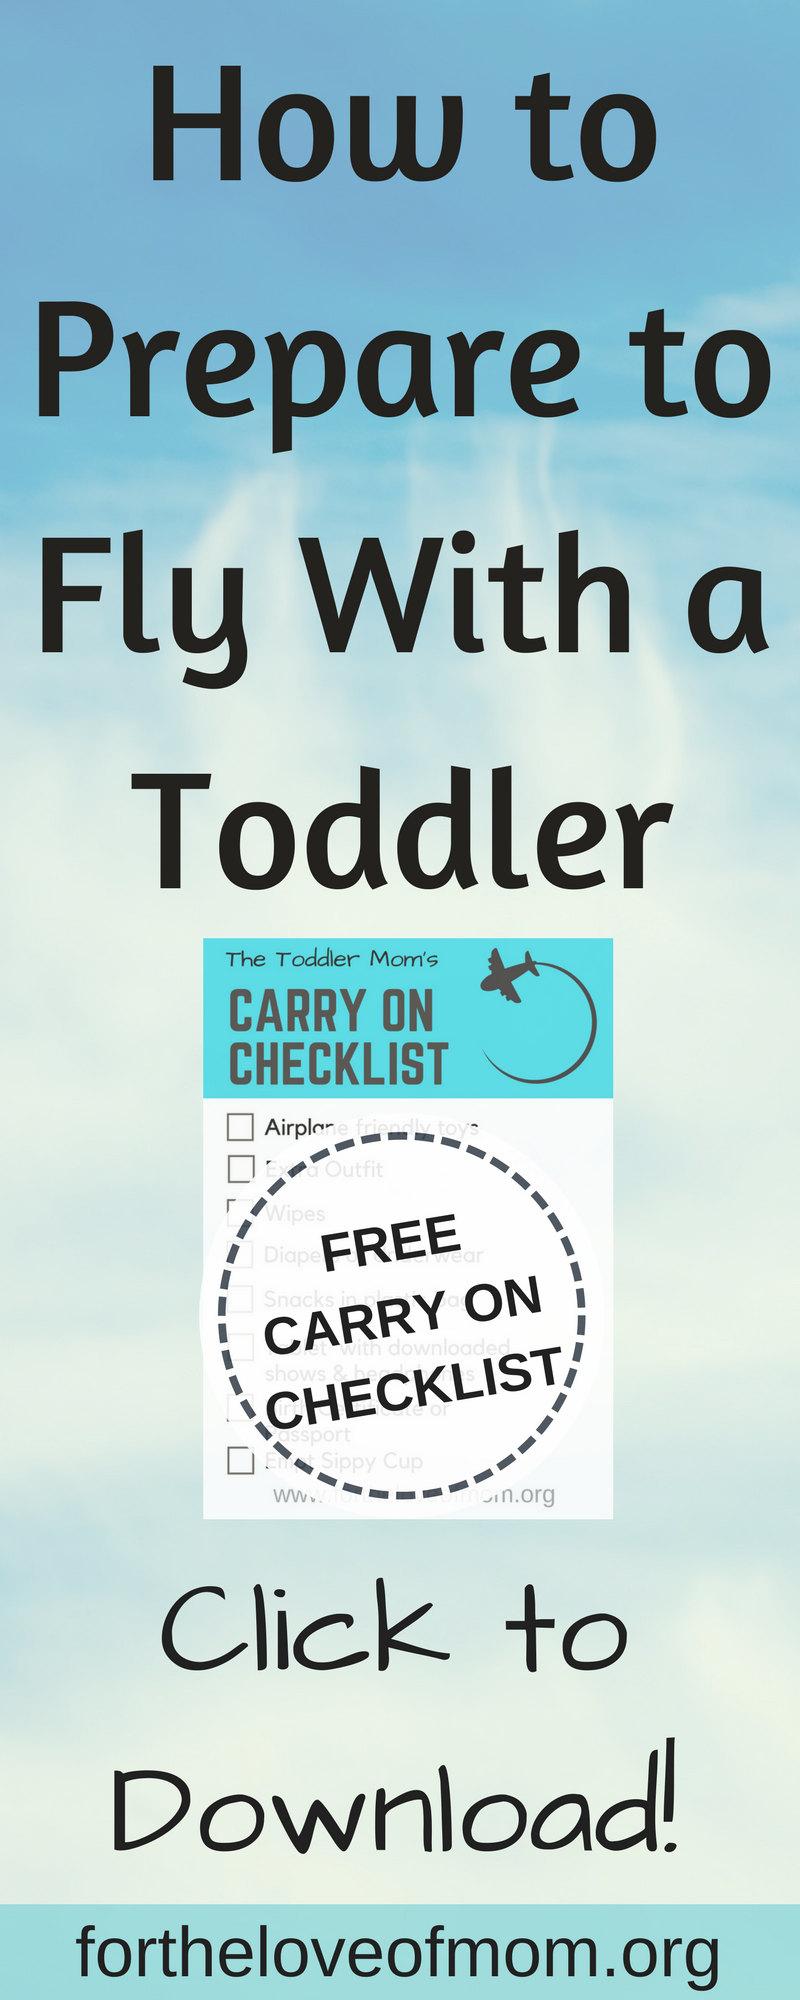 Toddler Mom's Carry On Checklist | Travel With Toddlers | Flying With a Toddler | #toddlers | #toddlermom | #travelwithkids | #familytravel | www.fortheloveofmom.org